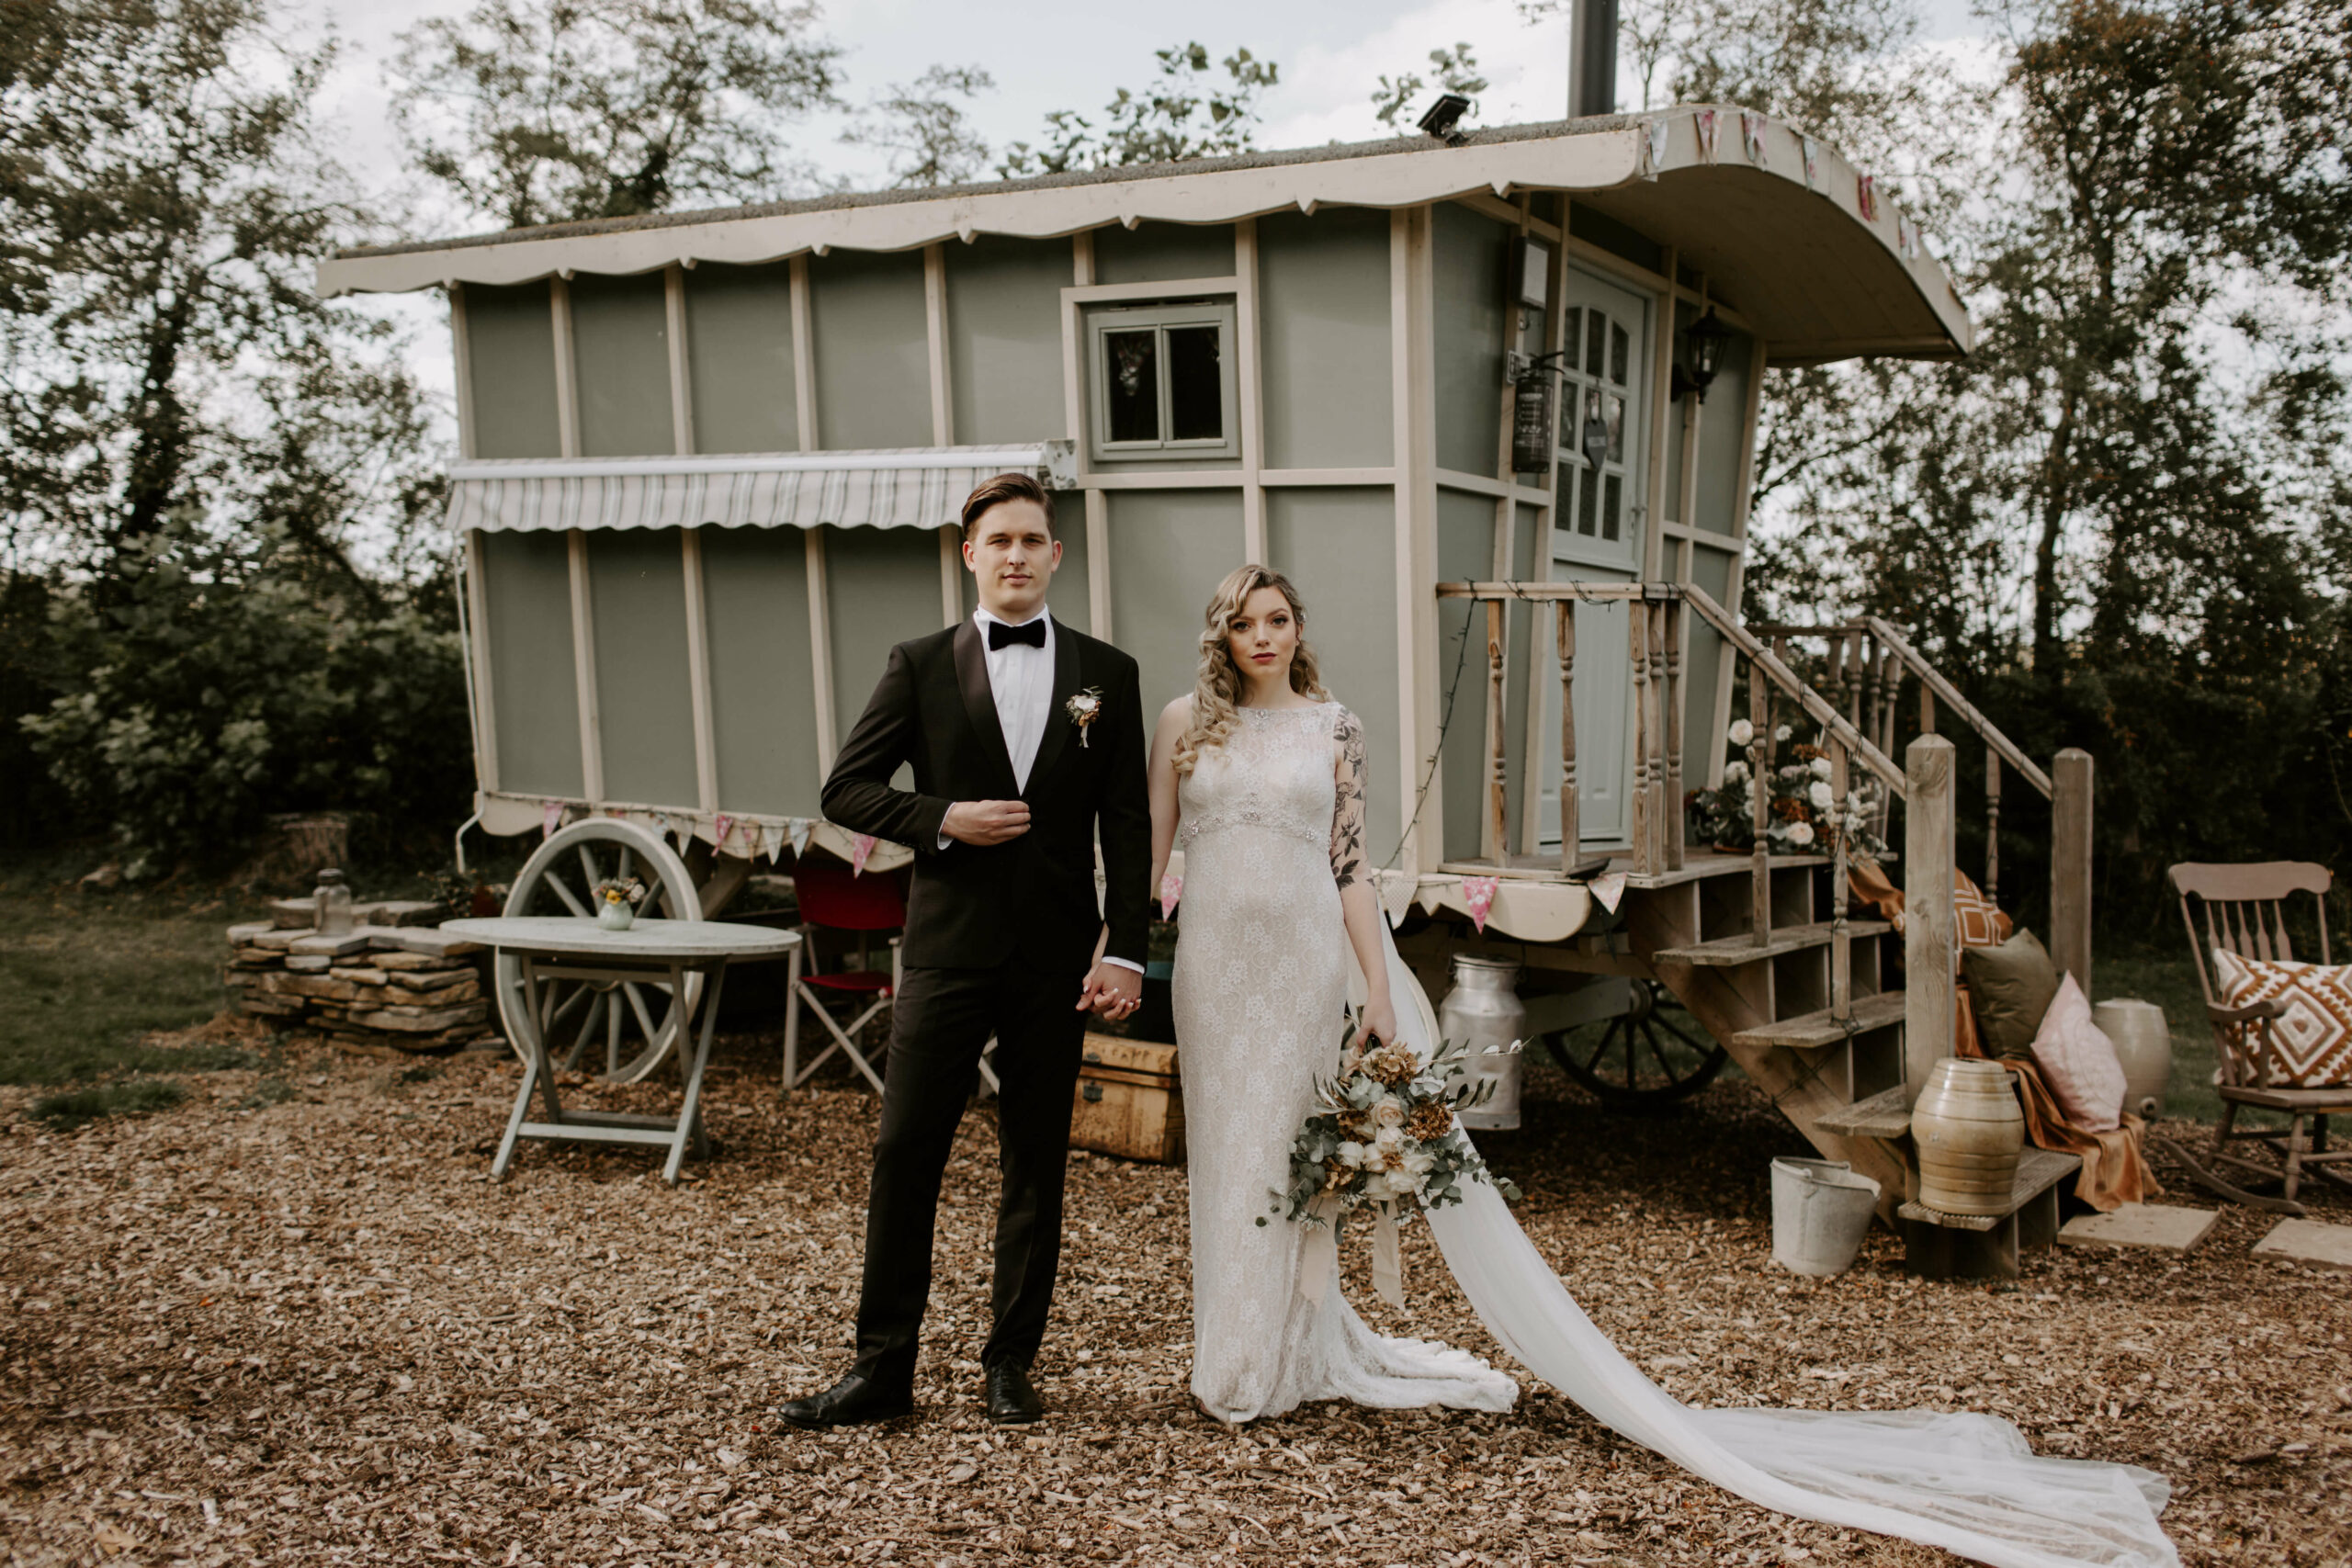 Styled Shoot: Vintage Glamour at The Dutch Barn, Willow and Rust Weddings